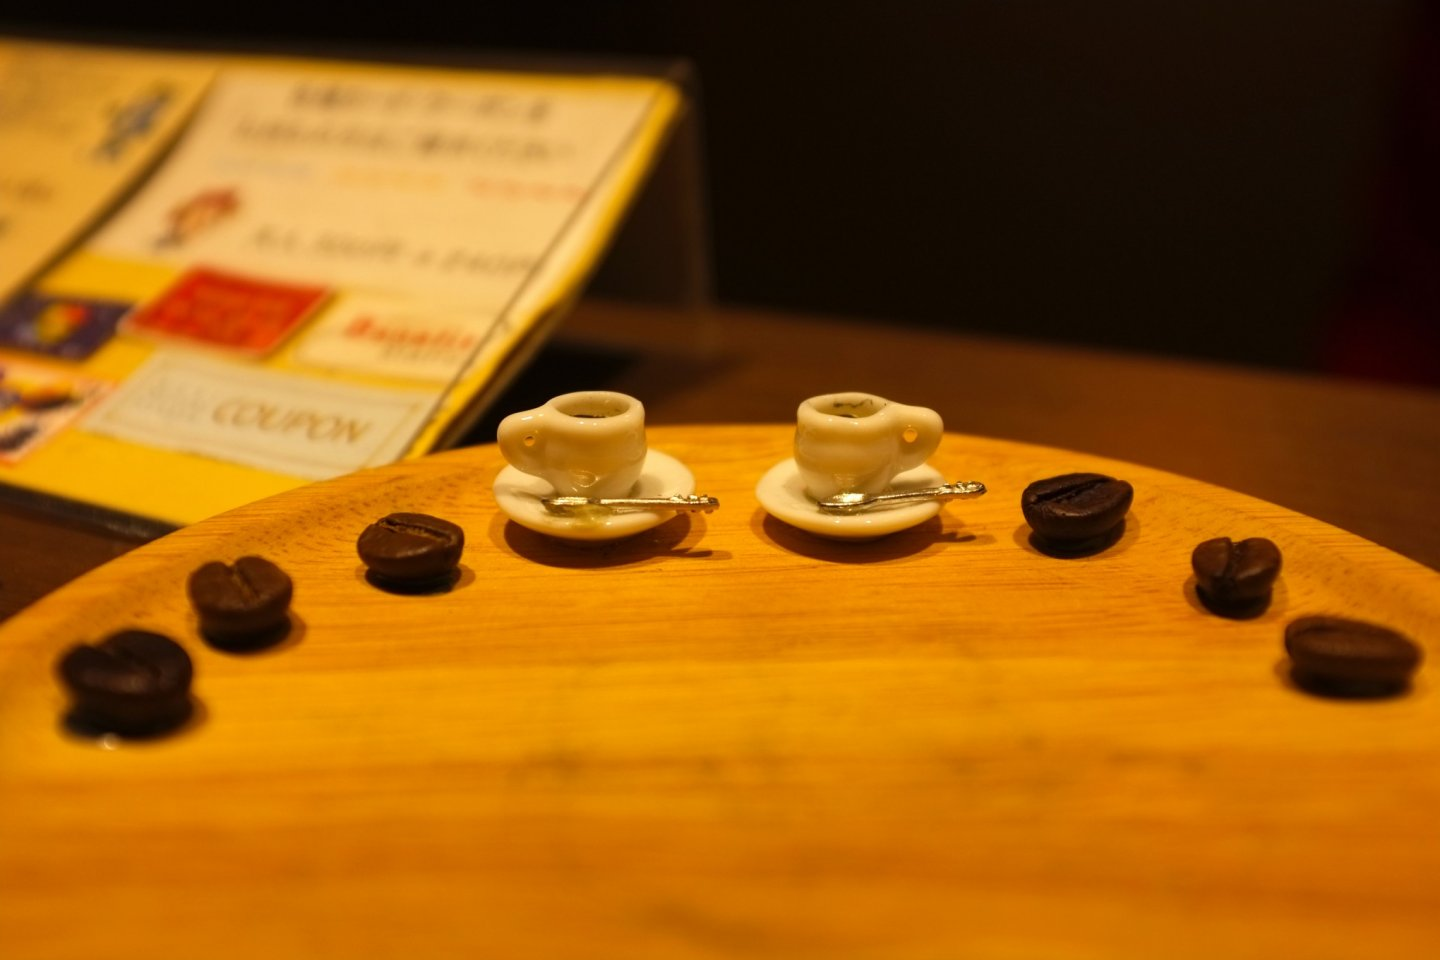 A miniature display of coffee cups